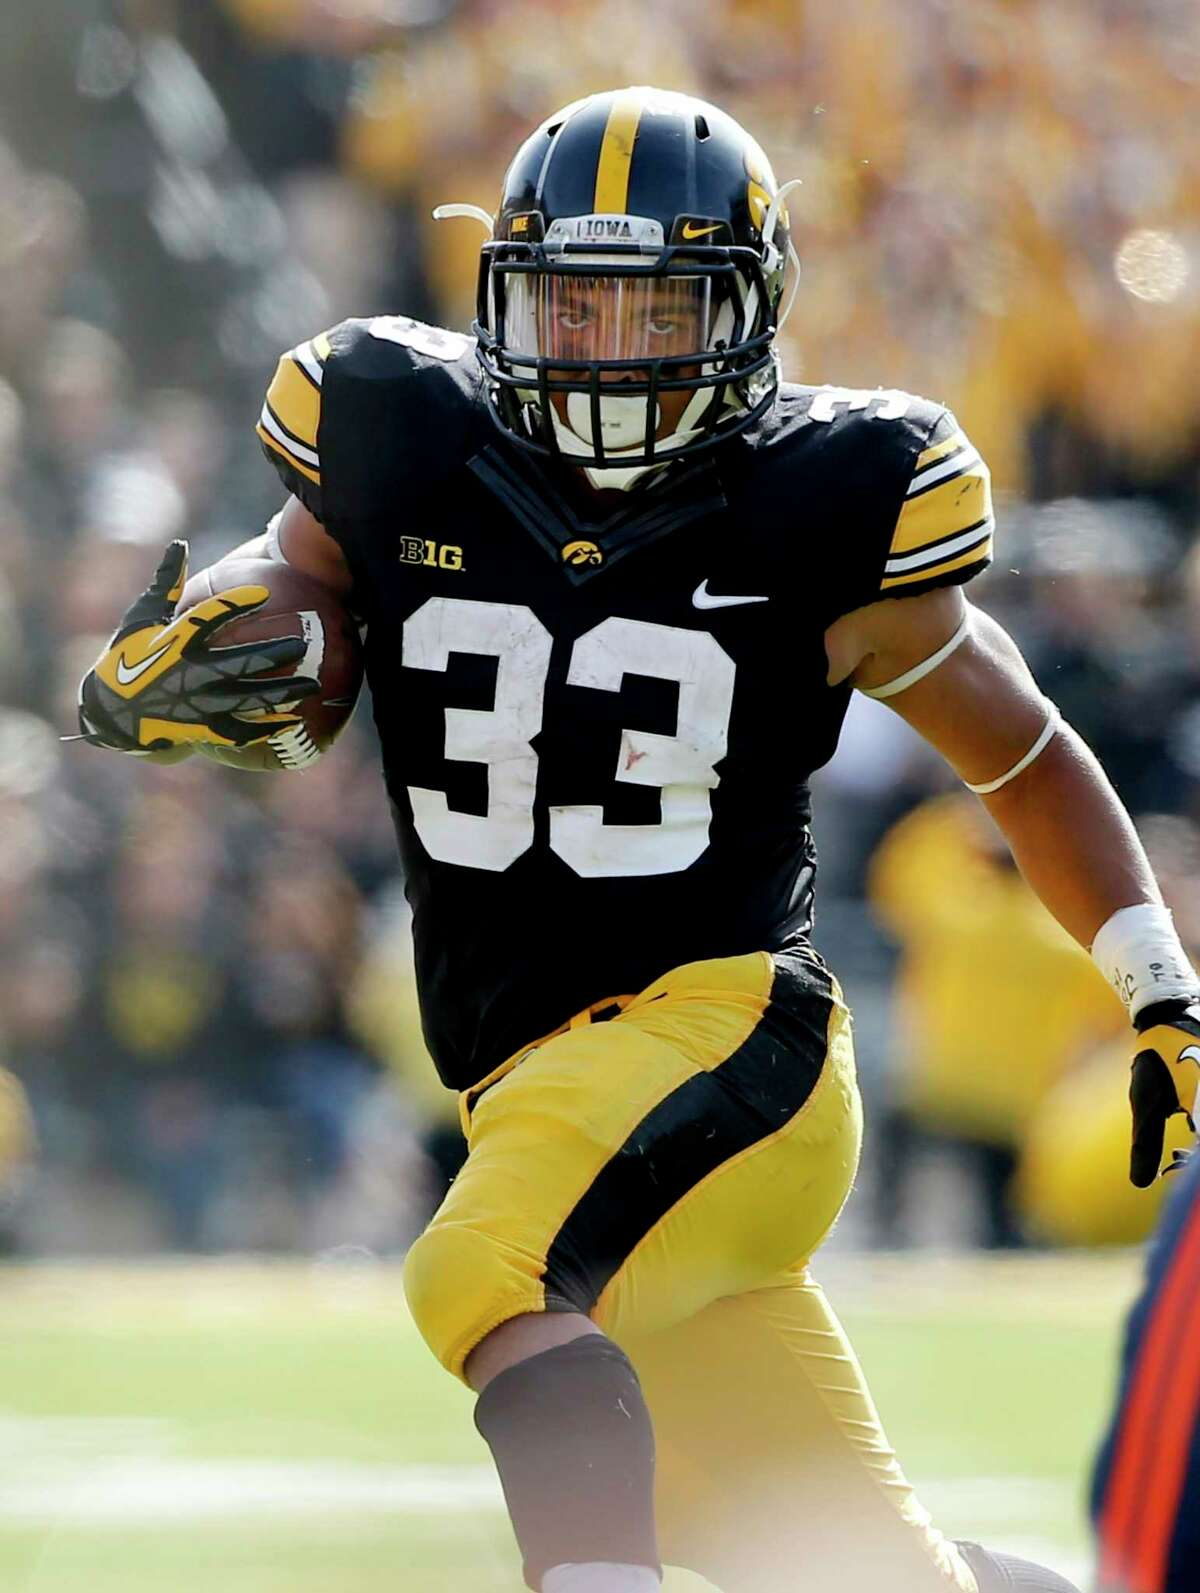 IOWA CITY, IA - OCTOBER 10: Running back Jordan Canzeri #33 of the Iowa Hawkeyes rushes for yards in the second half of play against Illinois Fighting Illini at Kinnick Stadium on October 10, 2015 in Iowa City, Iowa. Canzeri carried the ball 43 times for 256 yards. Iowa defeated Illinois 29-20. (Photo by David Purdy/Getty Images). ORG XMIT: 571408585